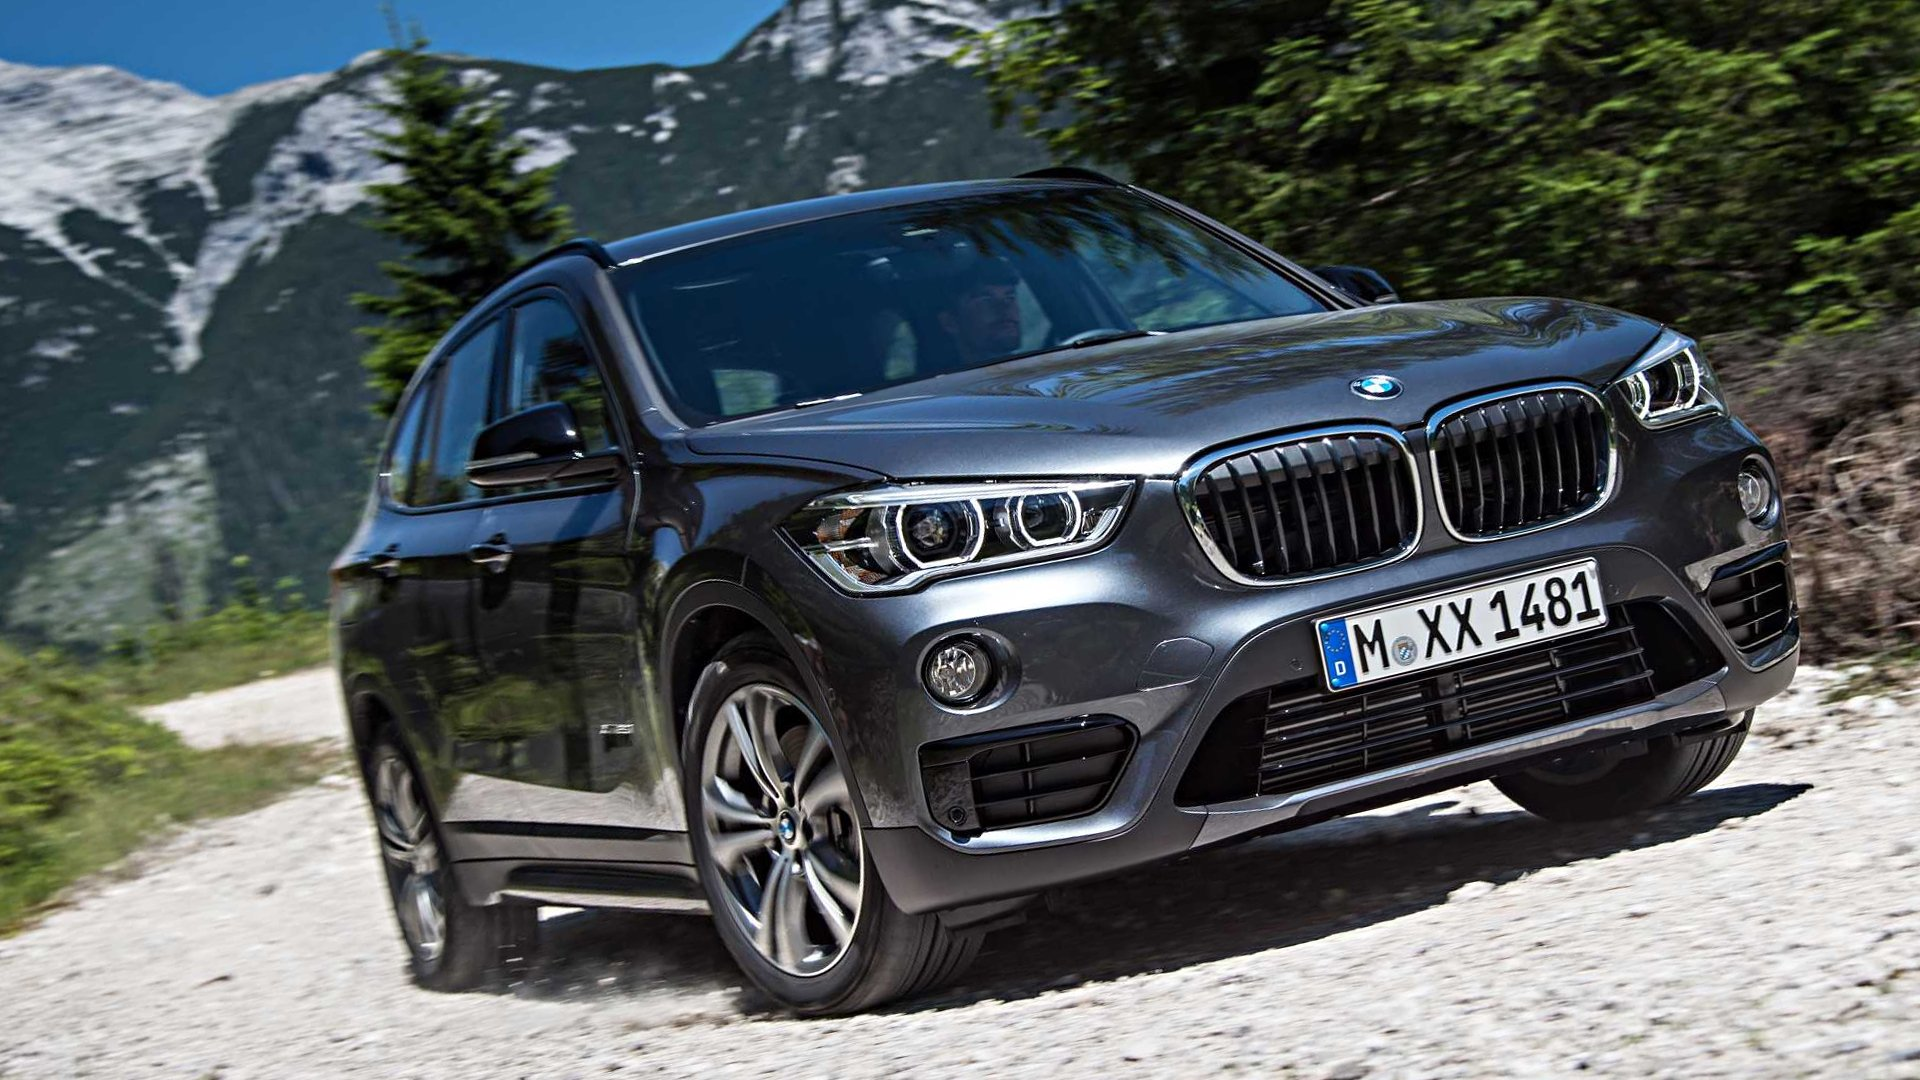 BMW X5 2018 Black HD